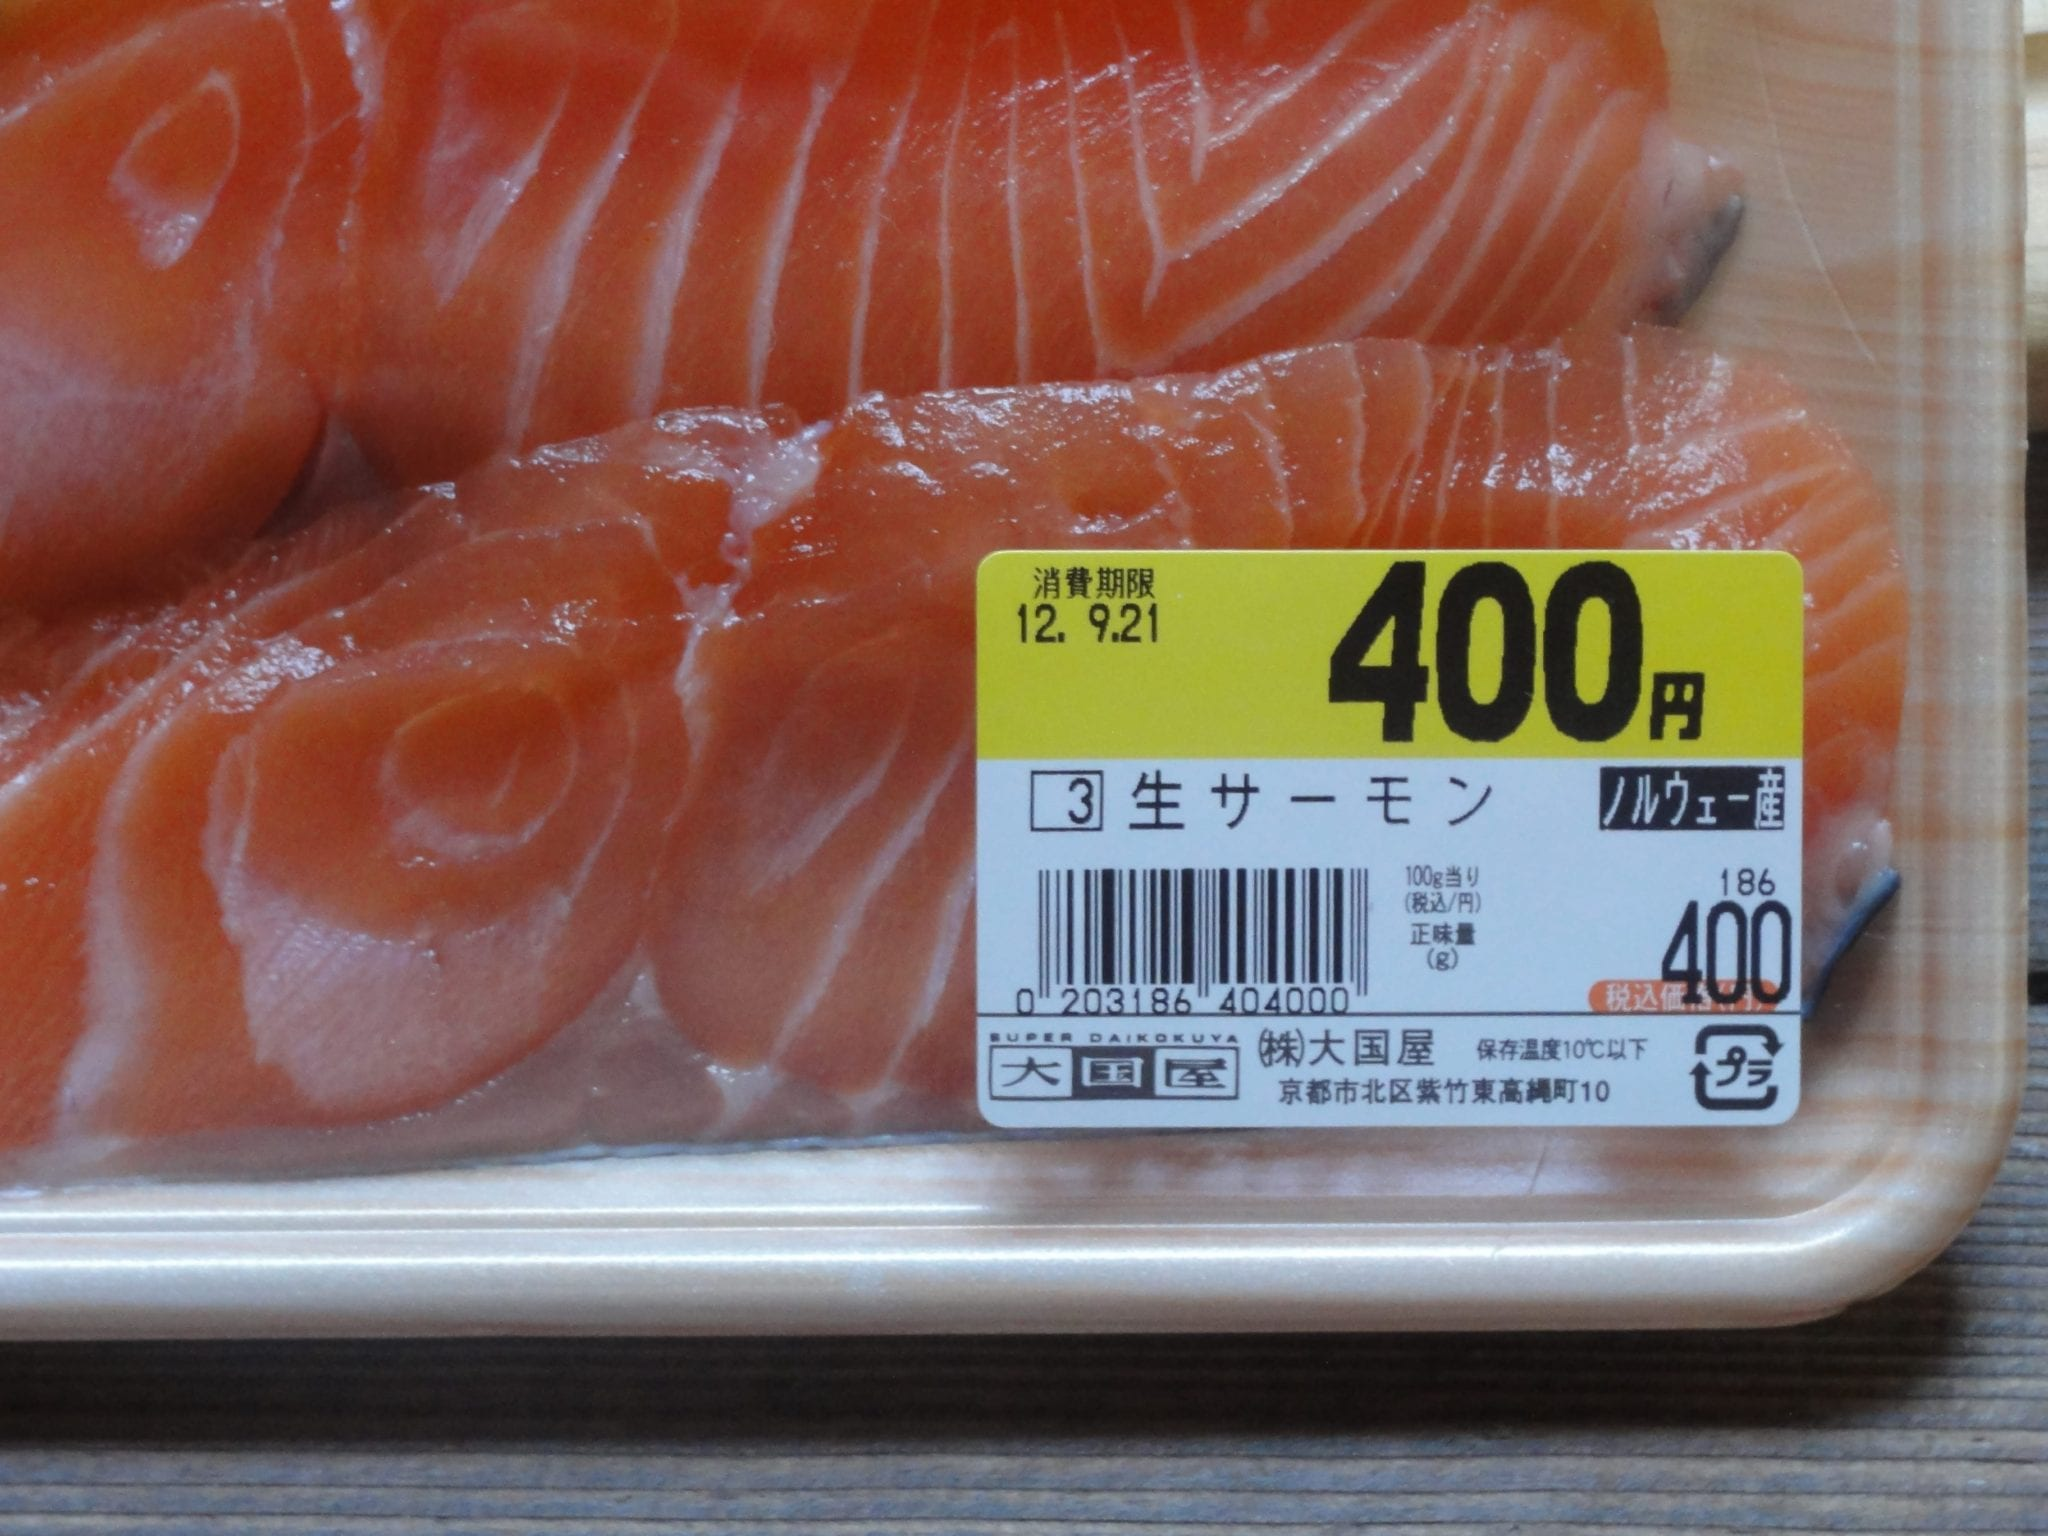 Fresh fish package label with price in kanji and katakana Japanese alphabets